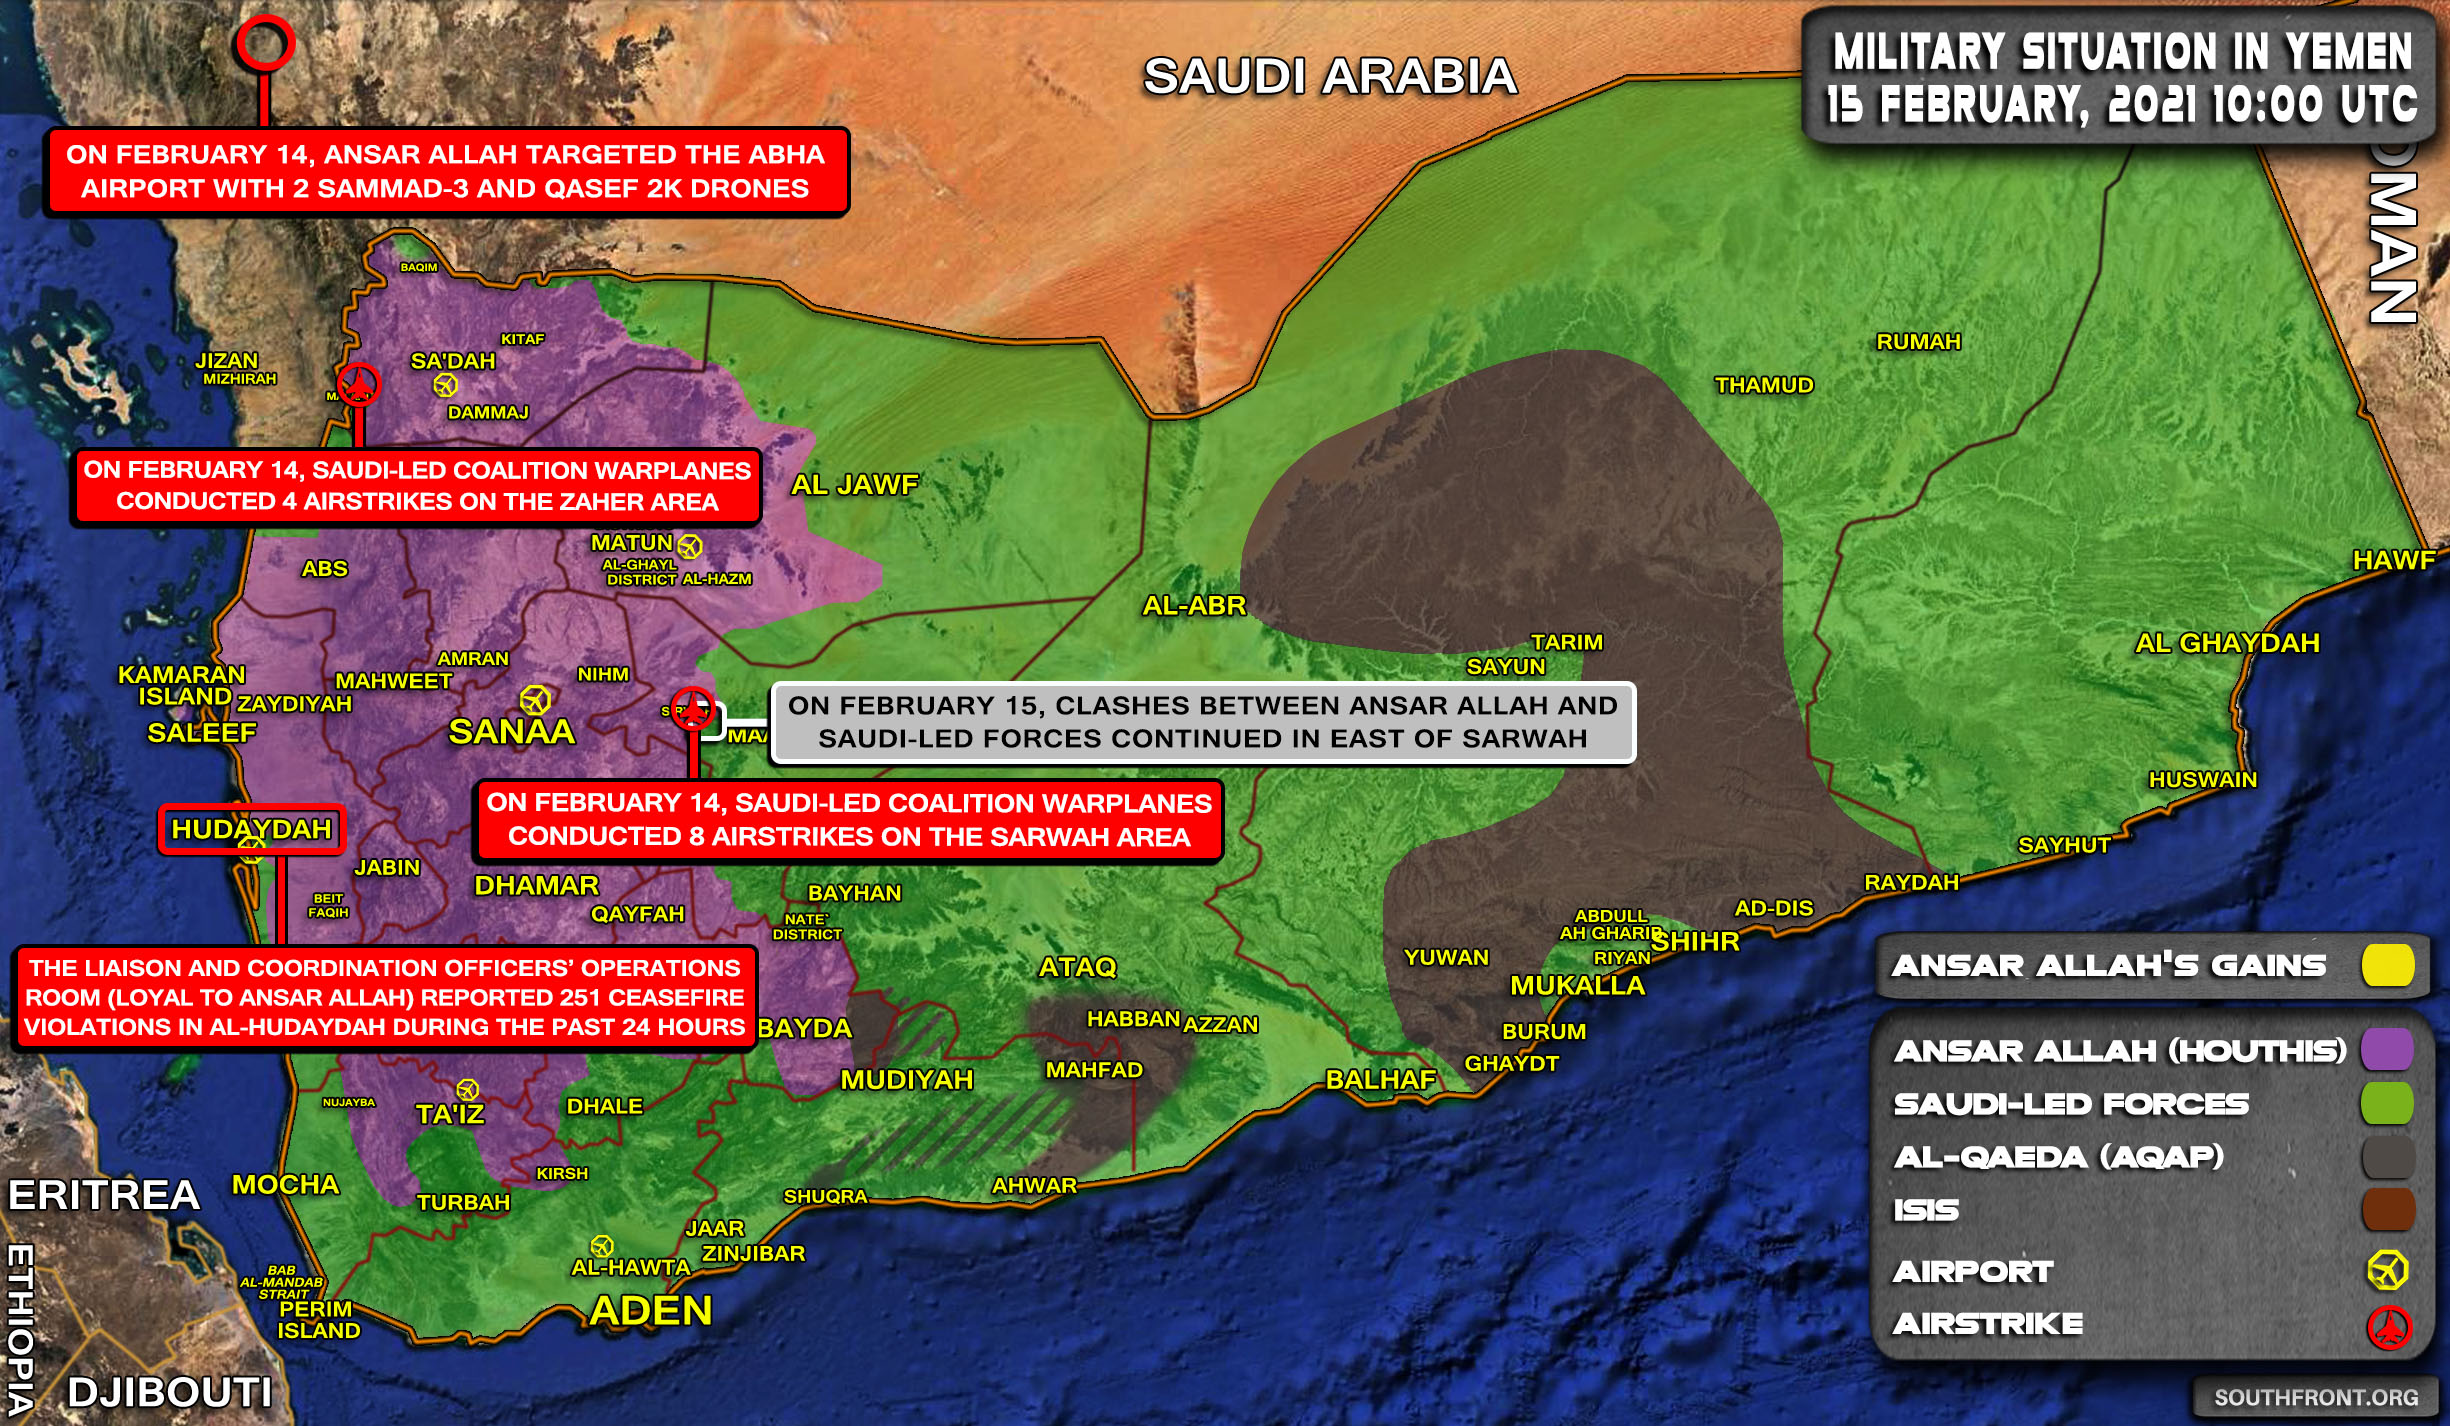 Military Situation In Yemen On February 15, 2021 (Map Update)